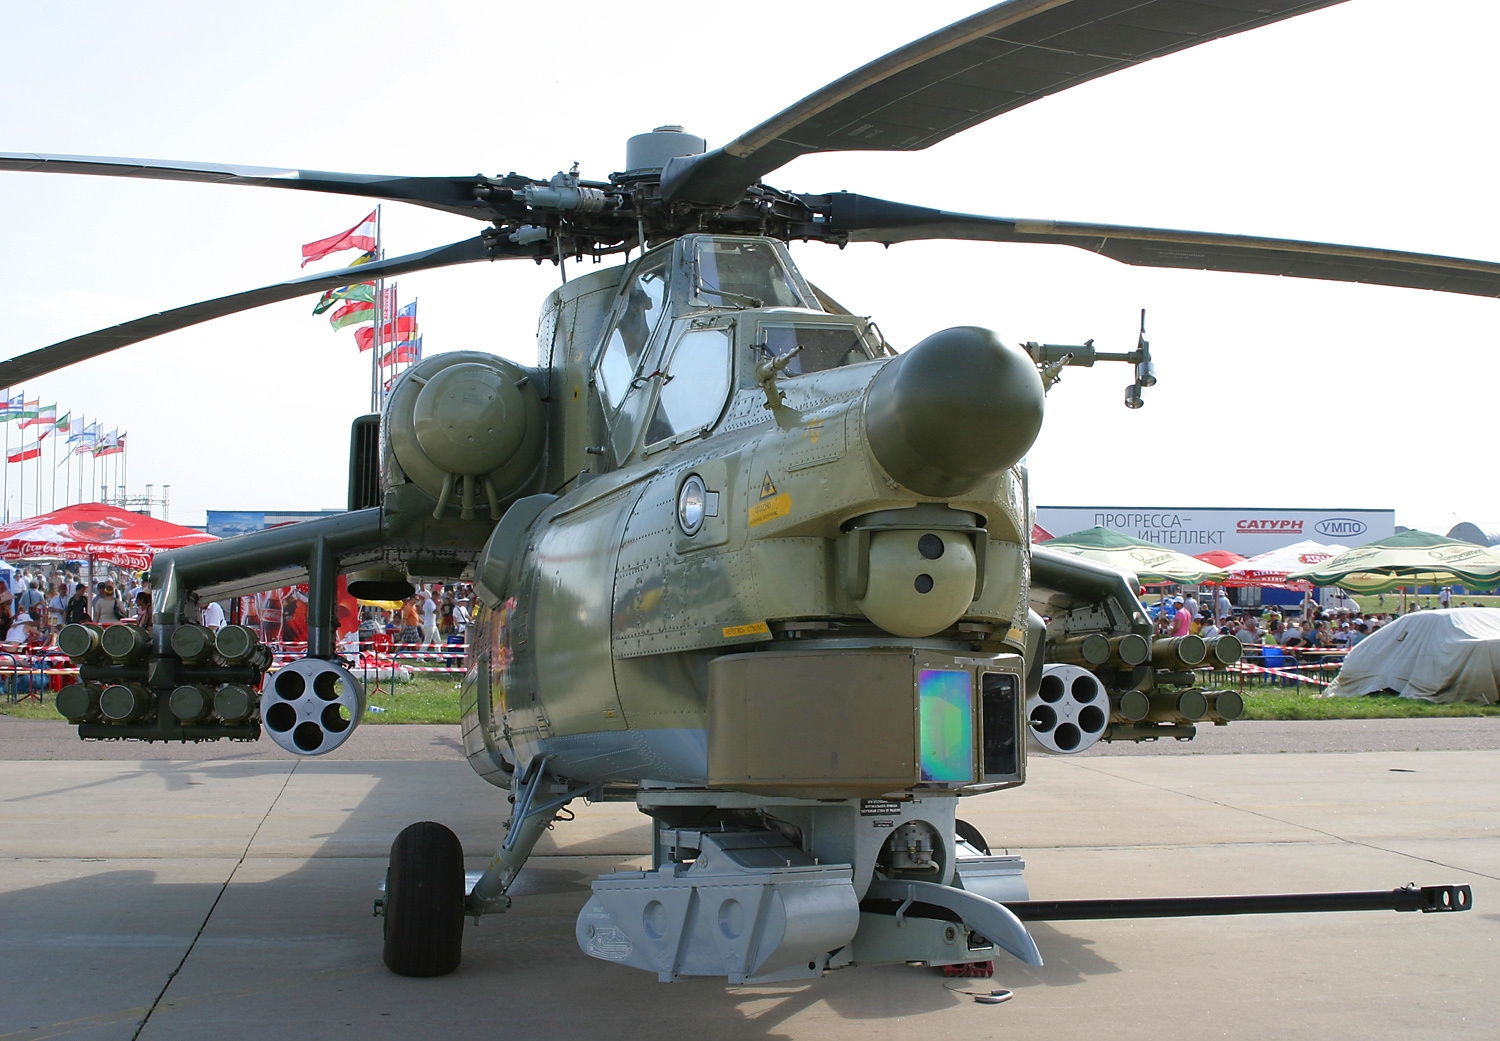 mi 35 helicopters with File Mil Mi 28ne  Russia   Air Force An1269071 on Mil Mi 26 further File Mil Mi 24 together with File Mil Mi 28NE  Russia   Air Force AN1269071 together with The Russian Military Will Receive 200 New Aircrafts In 2015 besides About Hind.